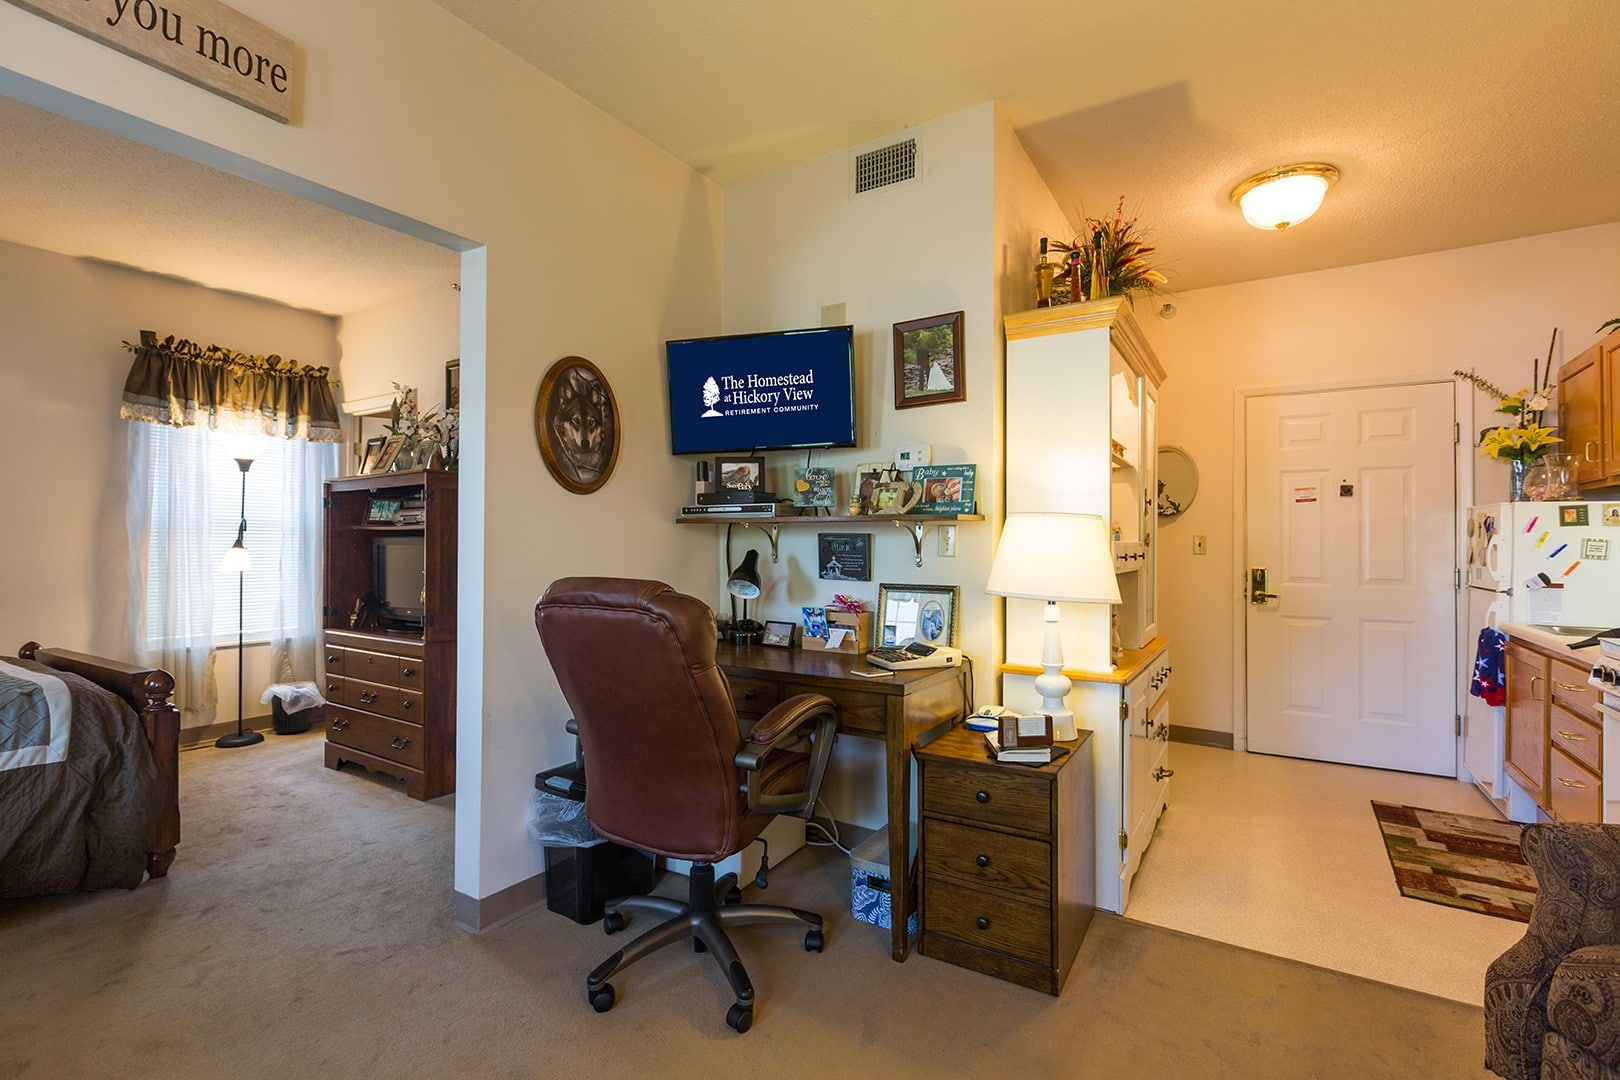 One bedrom apartment at The Homestead at Hickory View Retirement Community